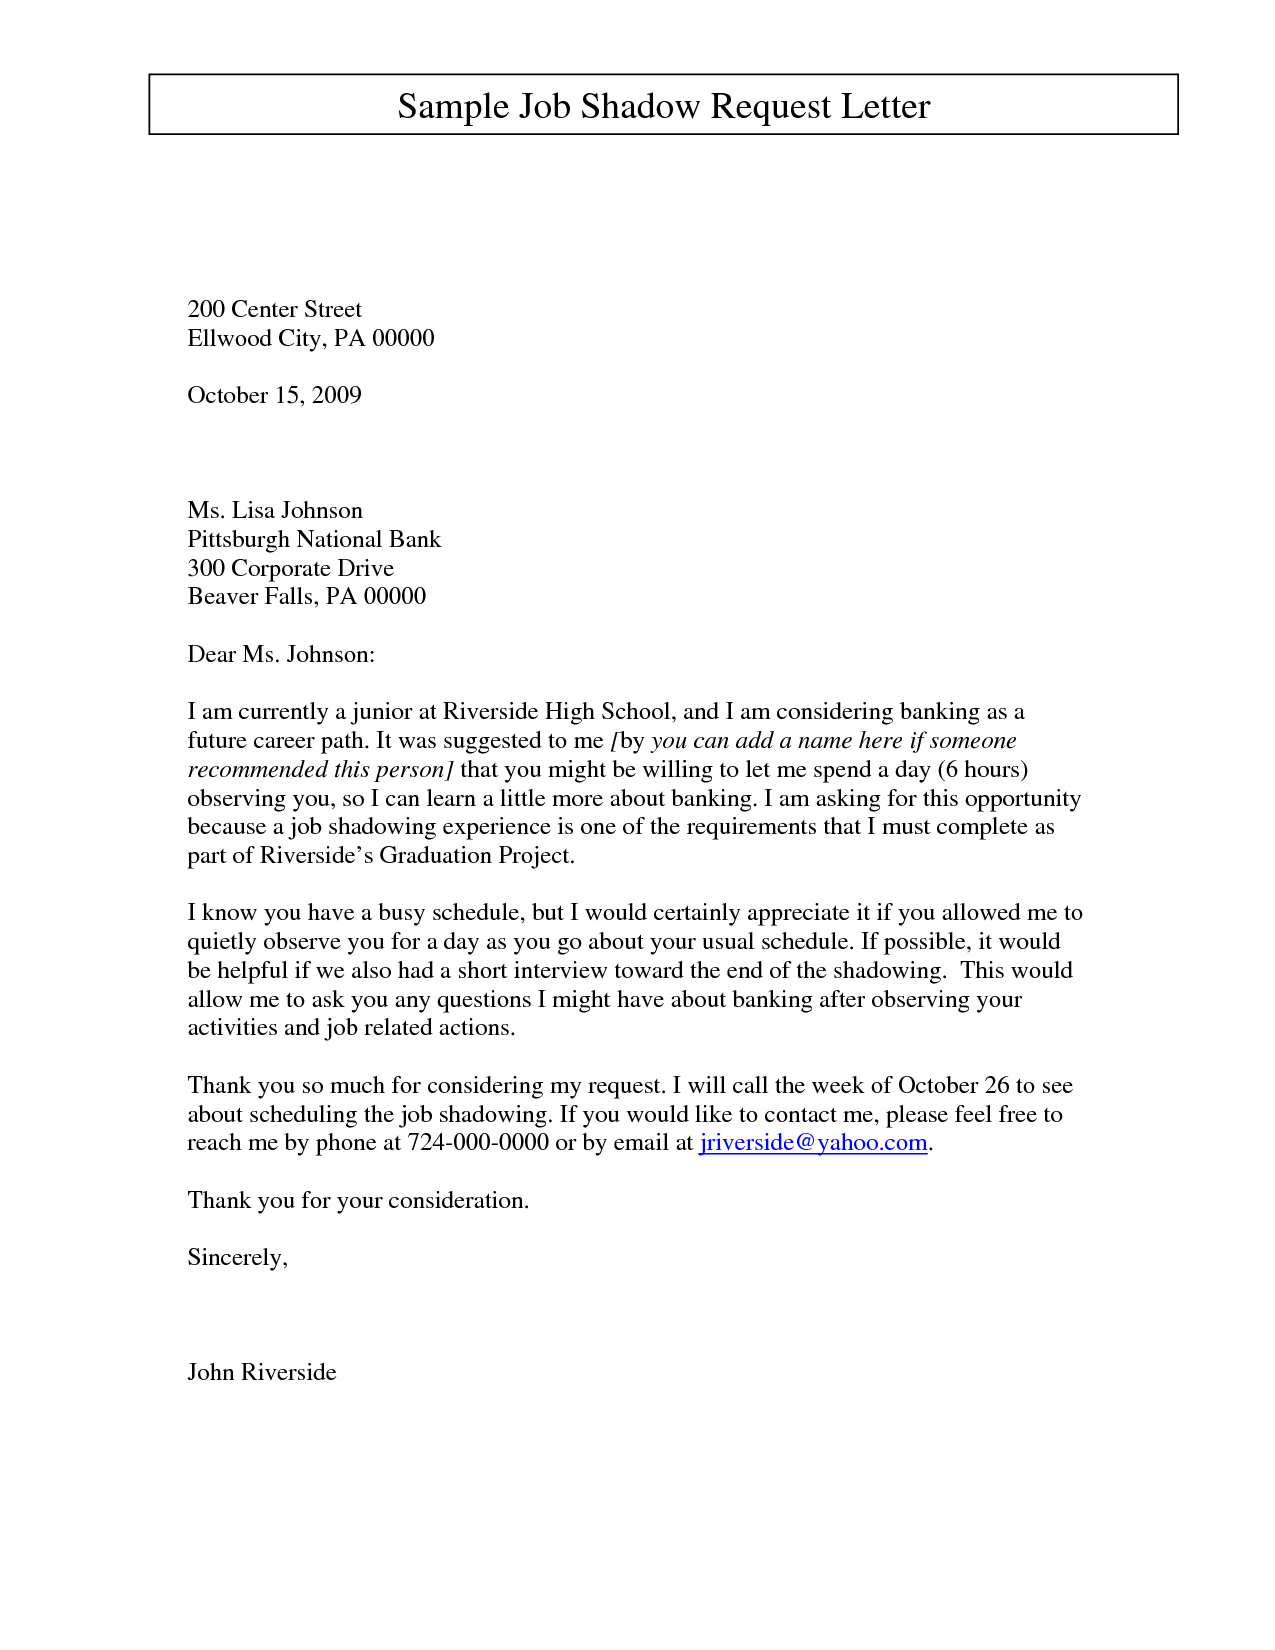 email cover letter template for job application